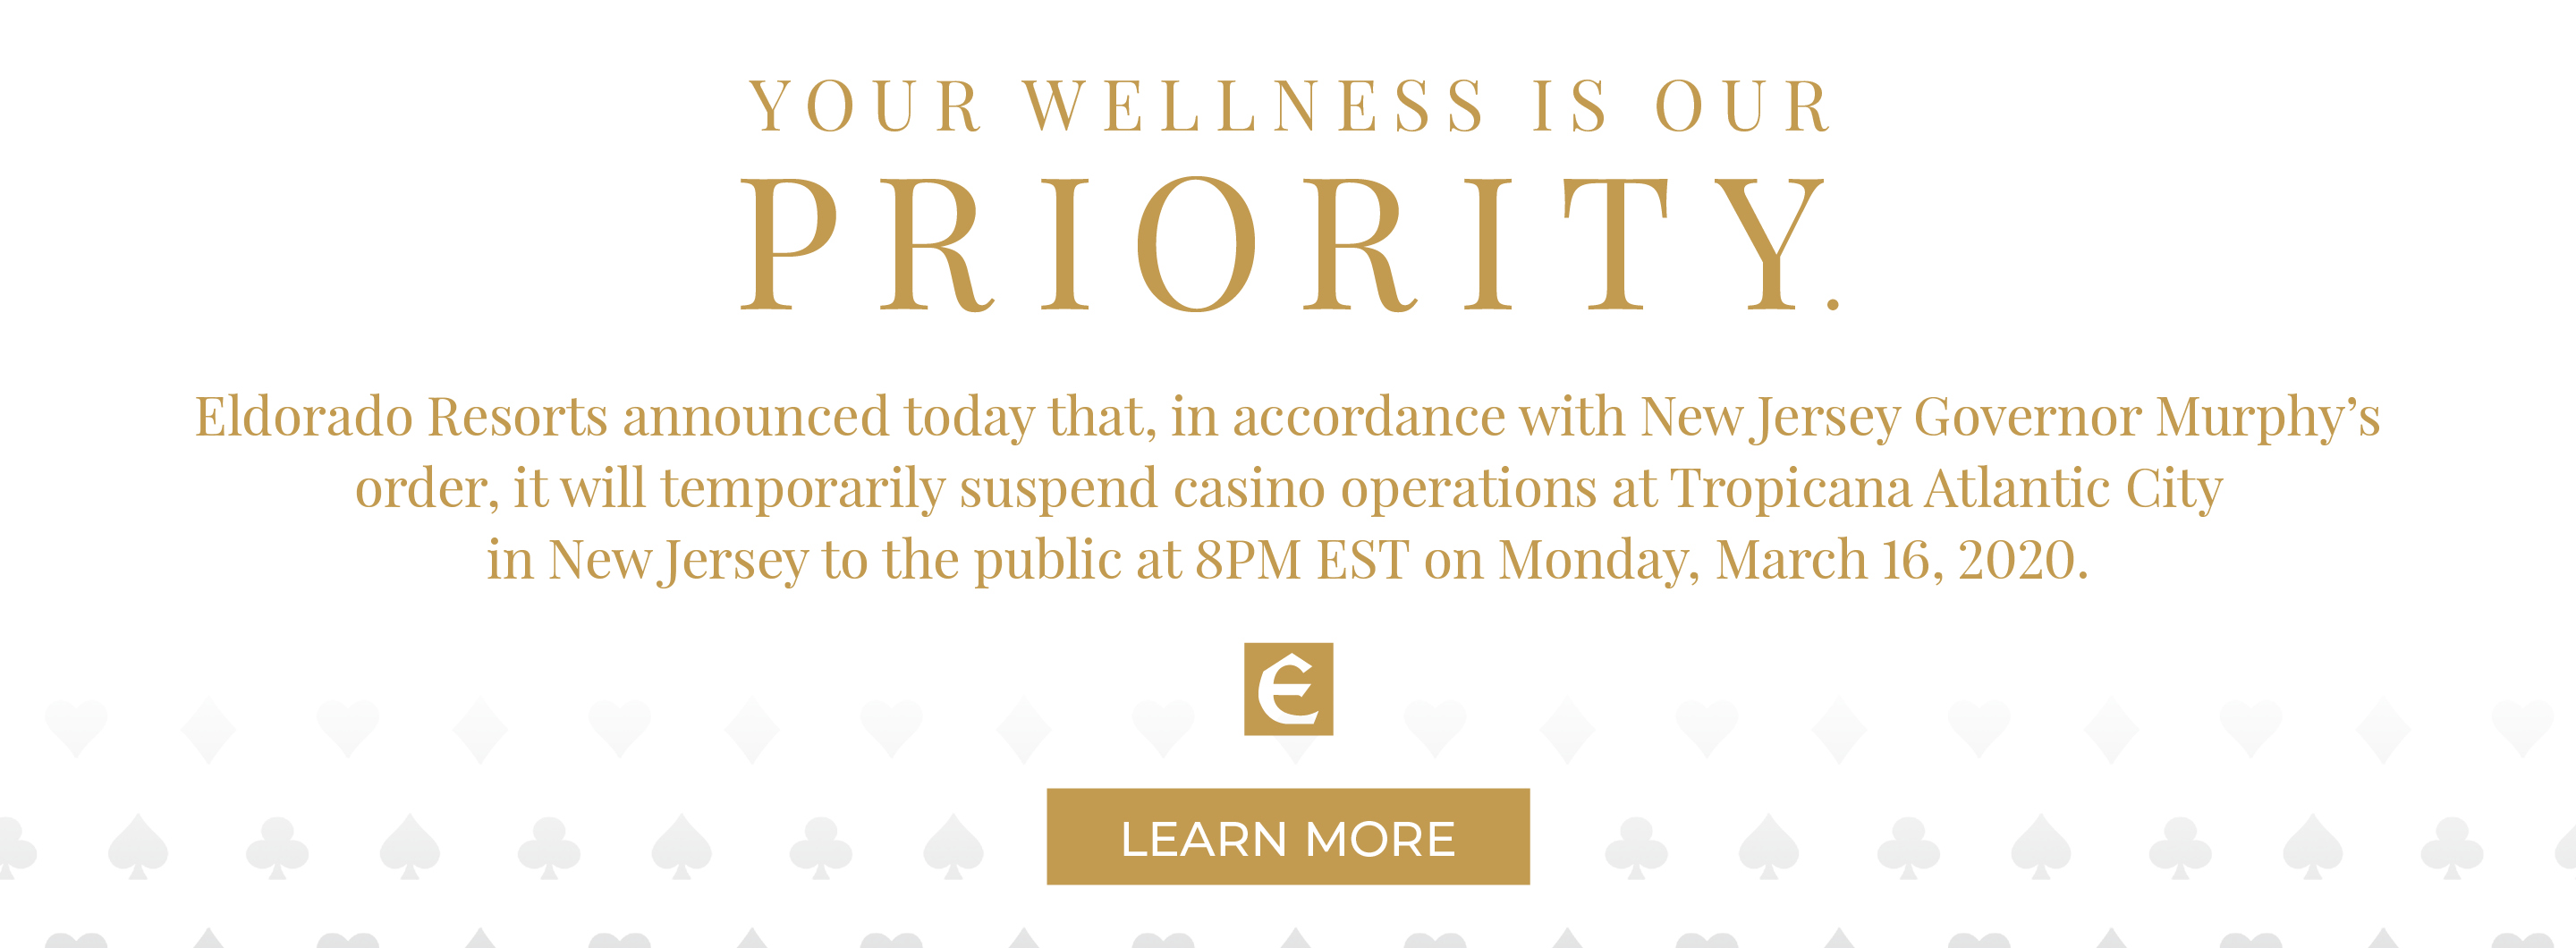 Eldorado Resorts message to close Tropicana Atlantic City in accordance with New Jersey's Governor Murphy's order